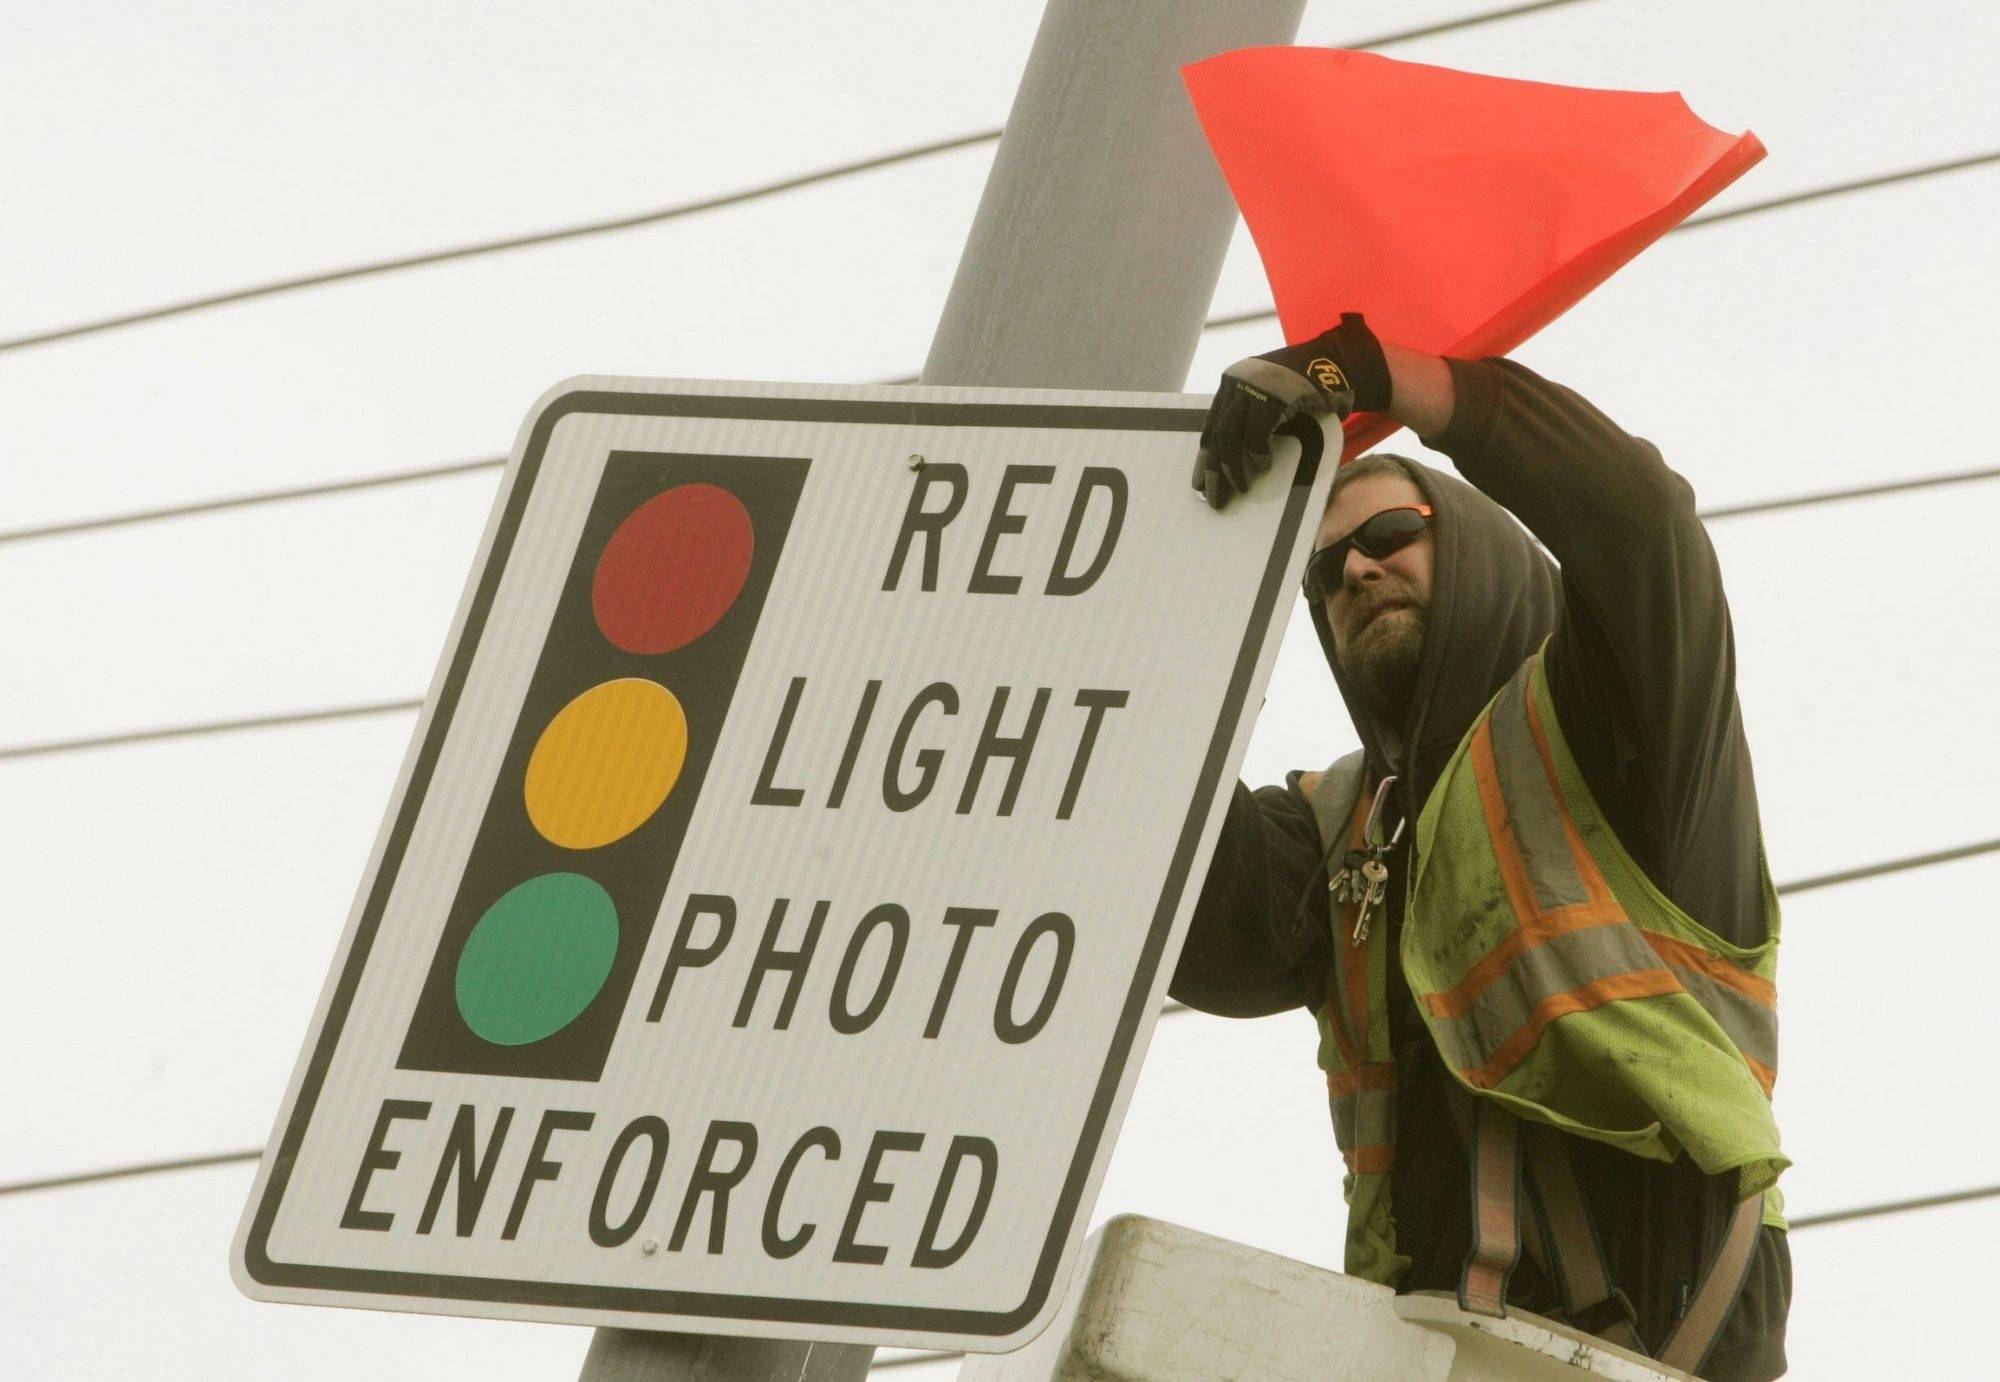 Wheeling isn't against red-light cameras, but they are against Cook County telling them where to install them.